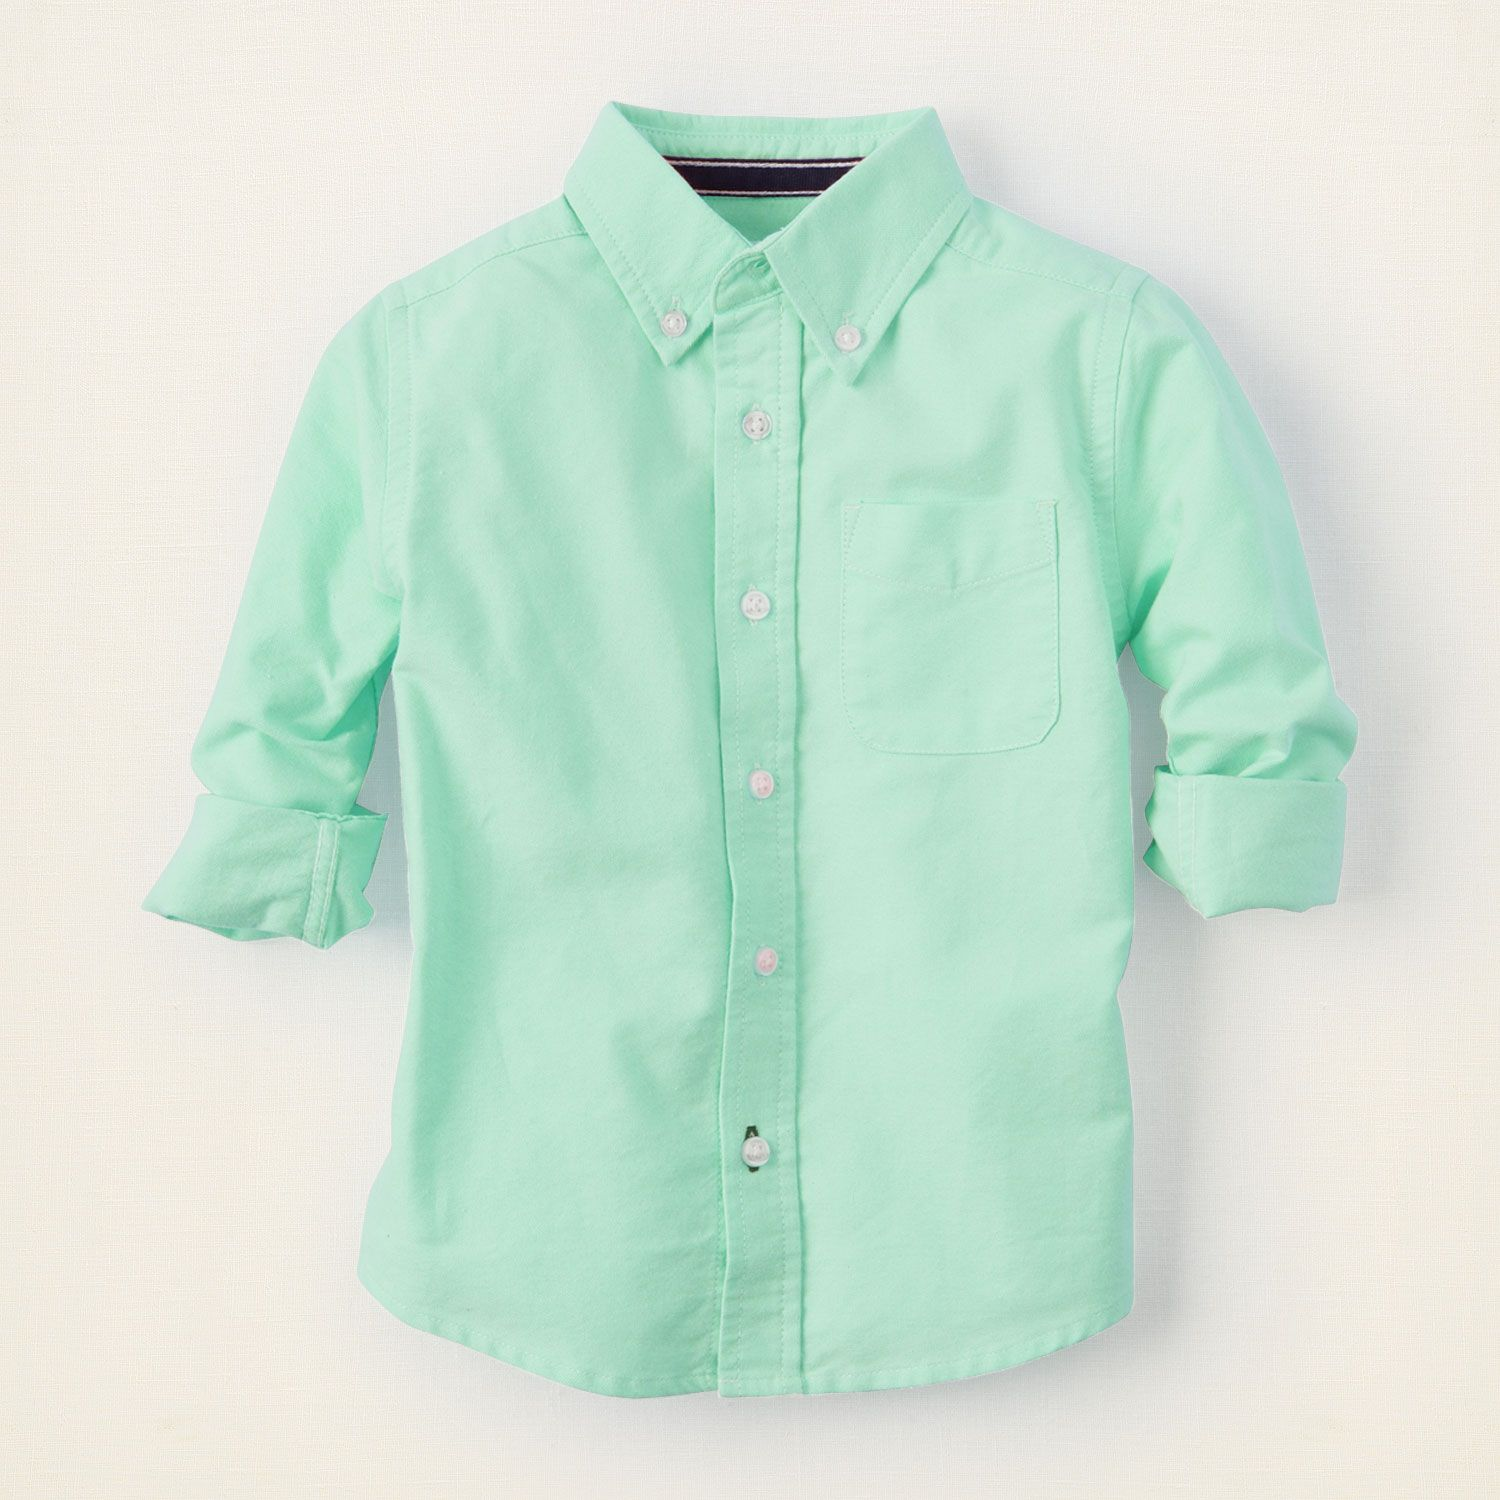 baby boy long sleeve tops oxford shirt